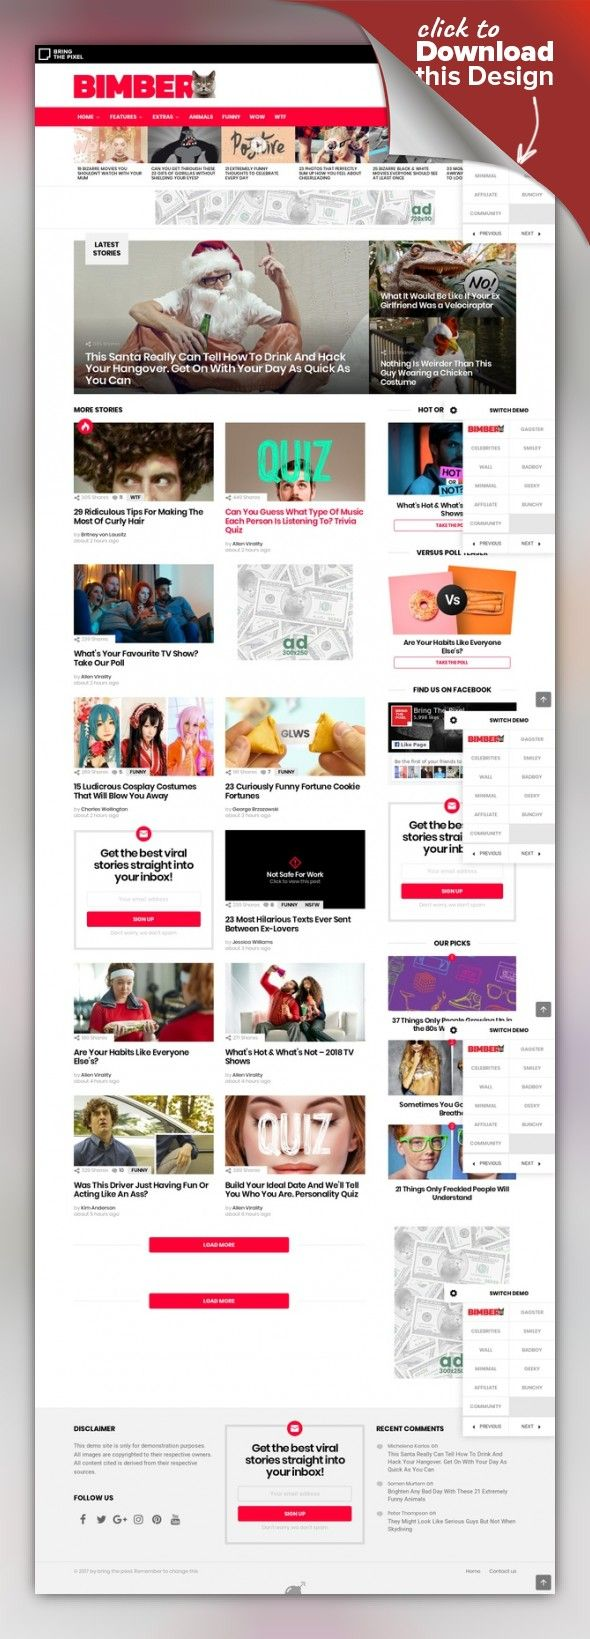 Bimber - Viral Magazine WordPress Theme 9gag, buzz, buzzfeed, celebrity, gossip, share buttons, sharing, social sharing, viral, viral blog, viral content, viral lists, viral magazine, viral news, viral theme Bimber is a viral magazine theme, that lets you launch a fully functional viral site in no more than 24 hours. It comes with powerful sharing buttons; popular, hot, trending listings and multiple ad locations. Everything in a lightweight and ...